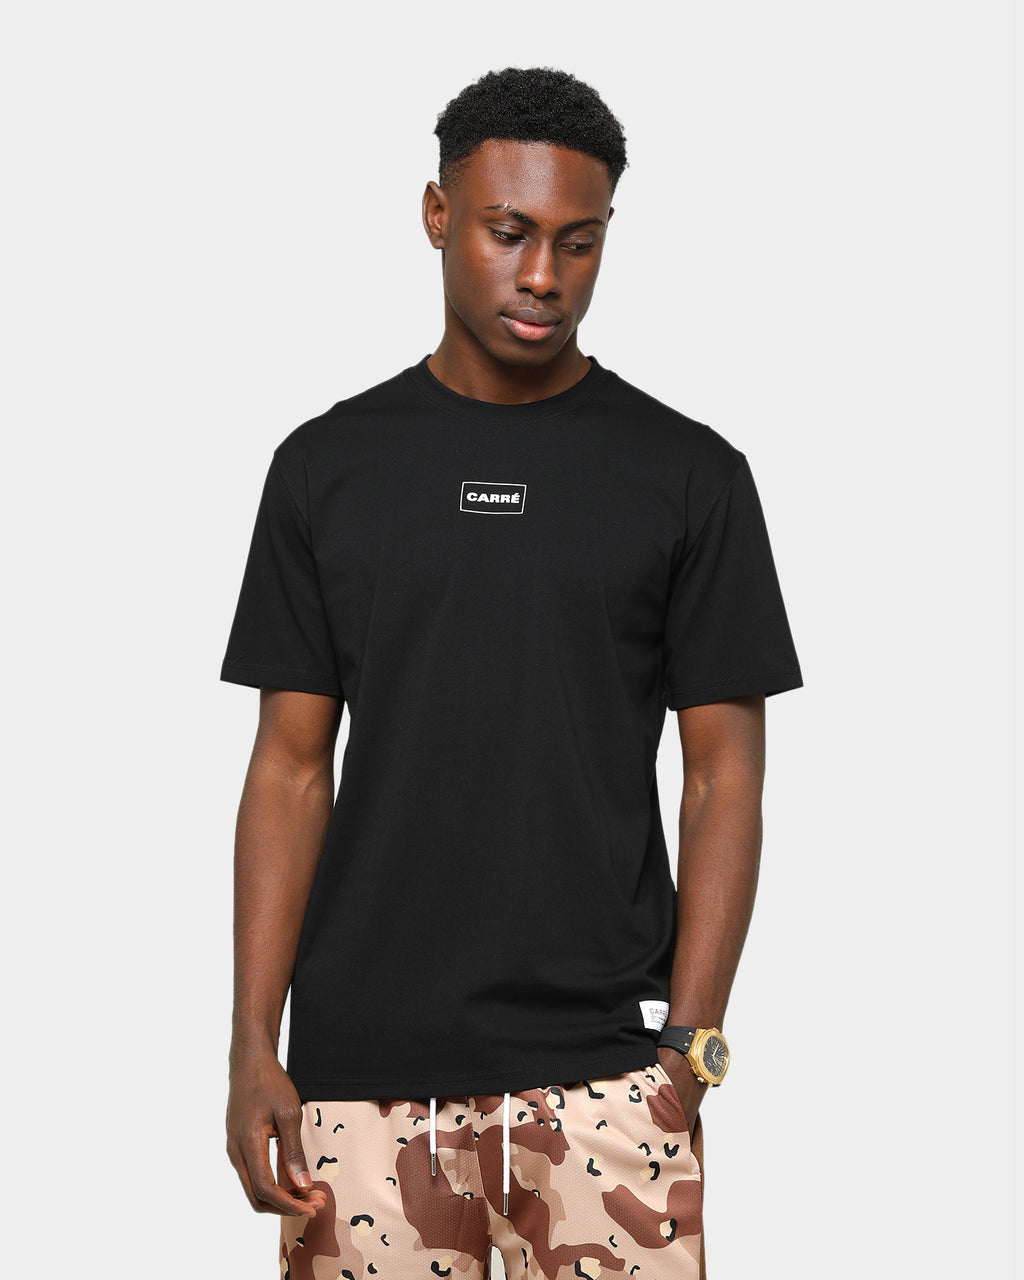 Carré Men's Mini Box Classique Short Sleeve T-Shirt Black